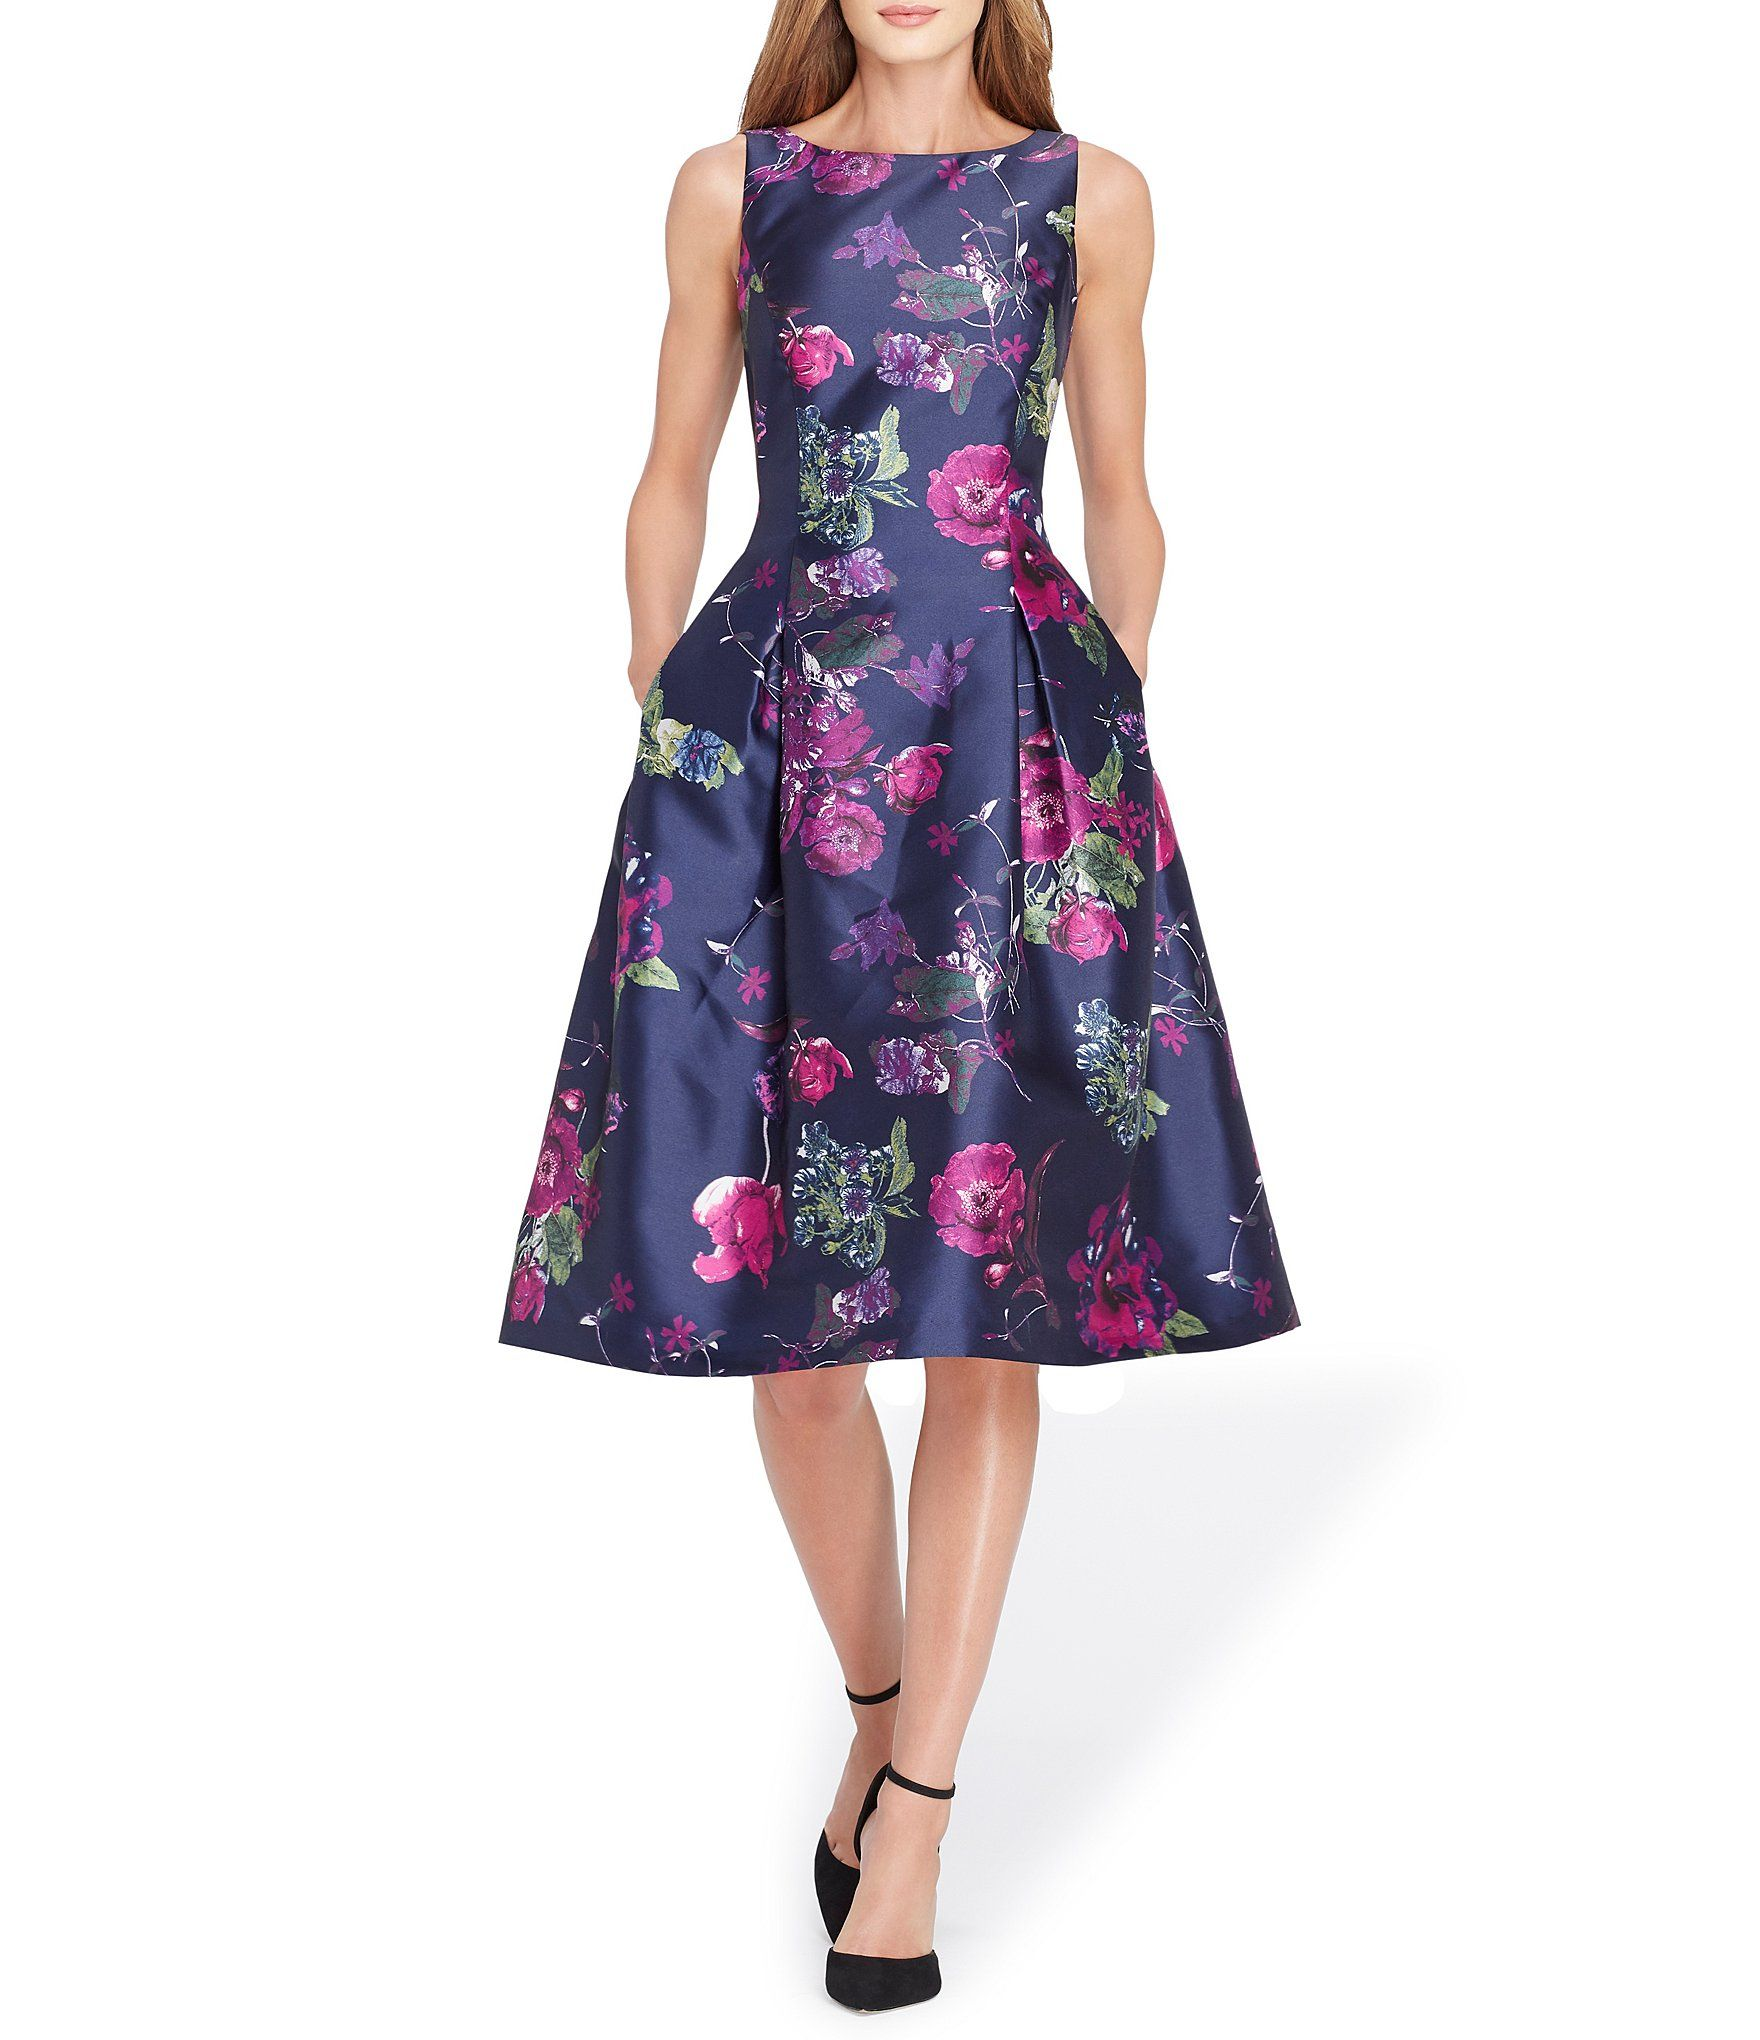 fb1ec6a383dbd Shop for Tahari ASL Floral Mikado Fit and Flare Dress at Dillards.com.  Visit Dillards.com to find clothing, accessories, shoes, cosmetics & more.  The Style ...